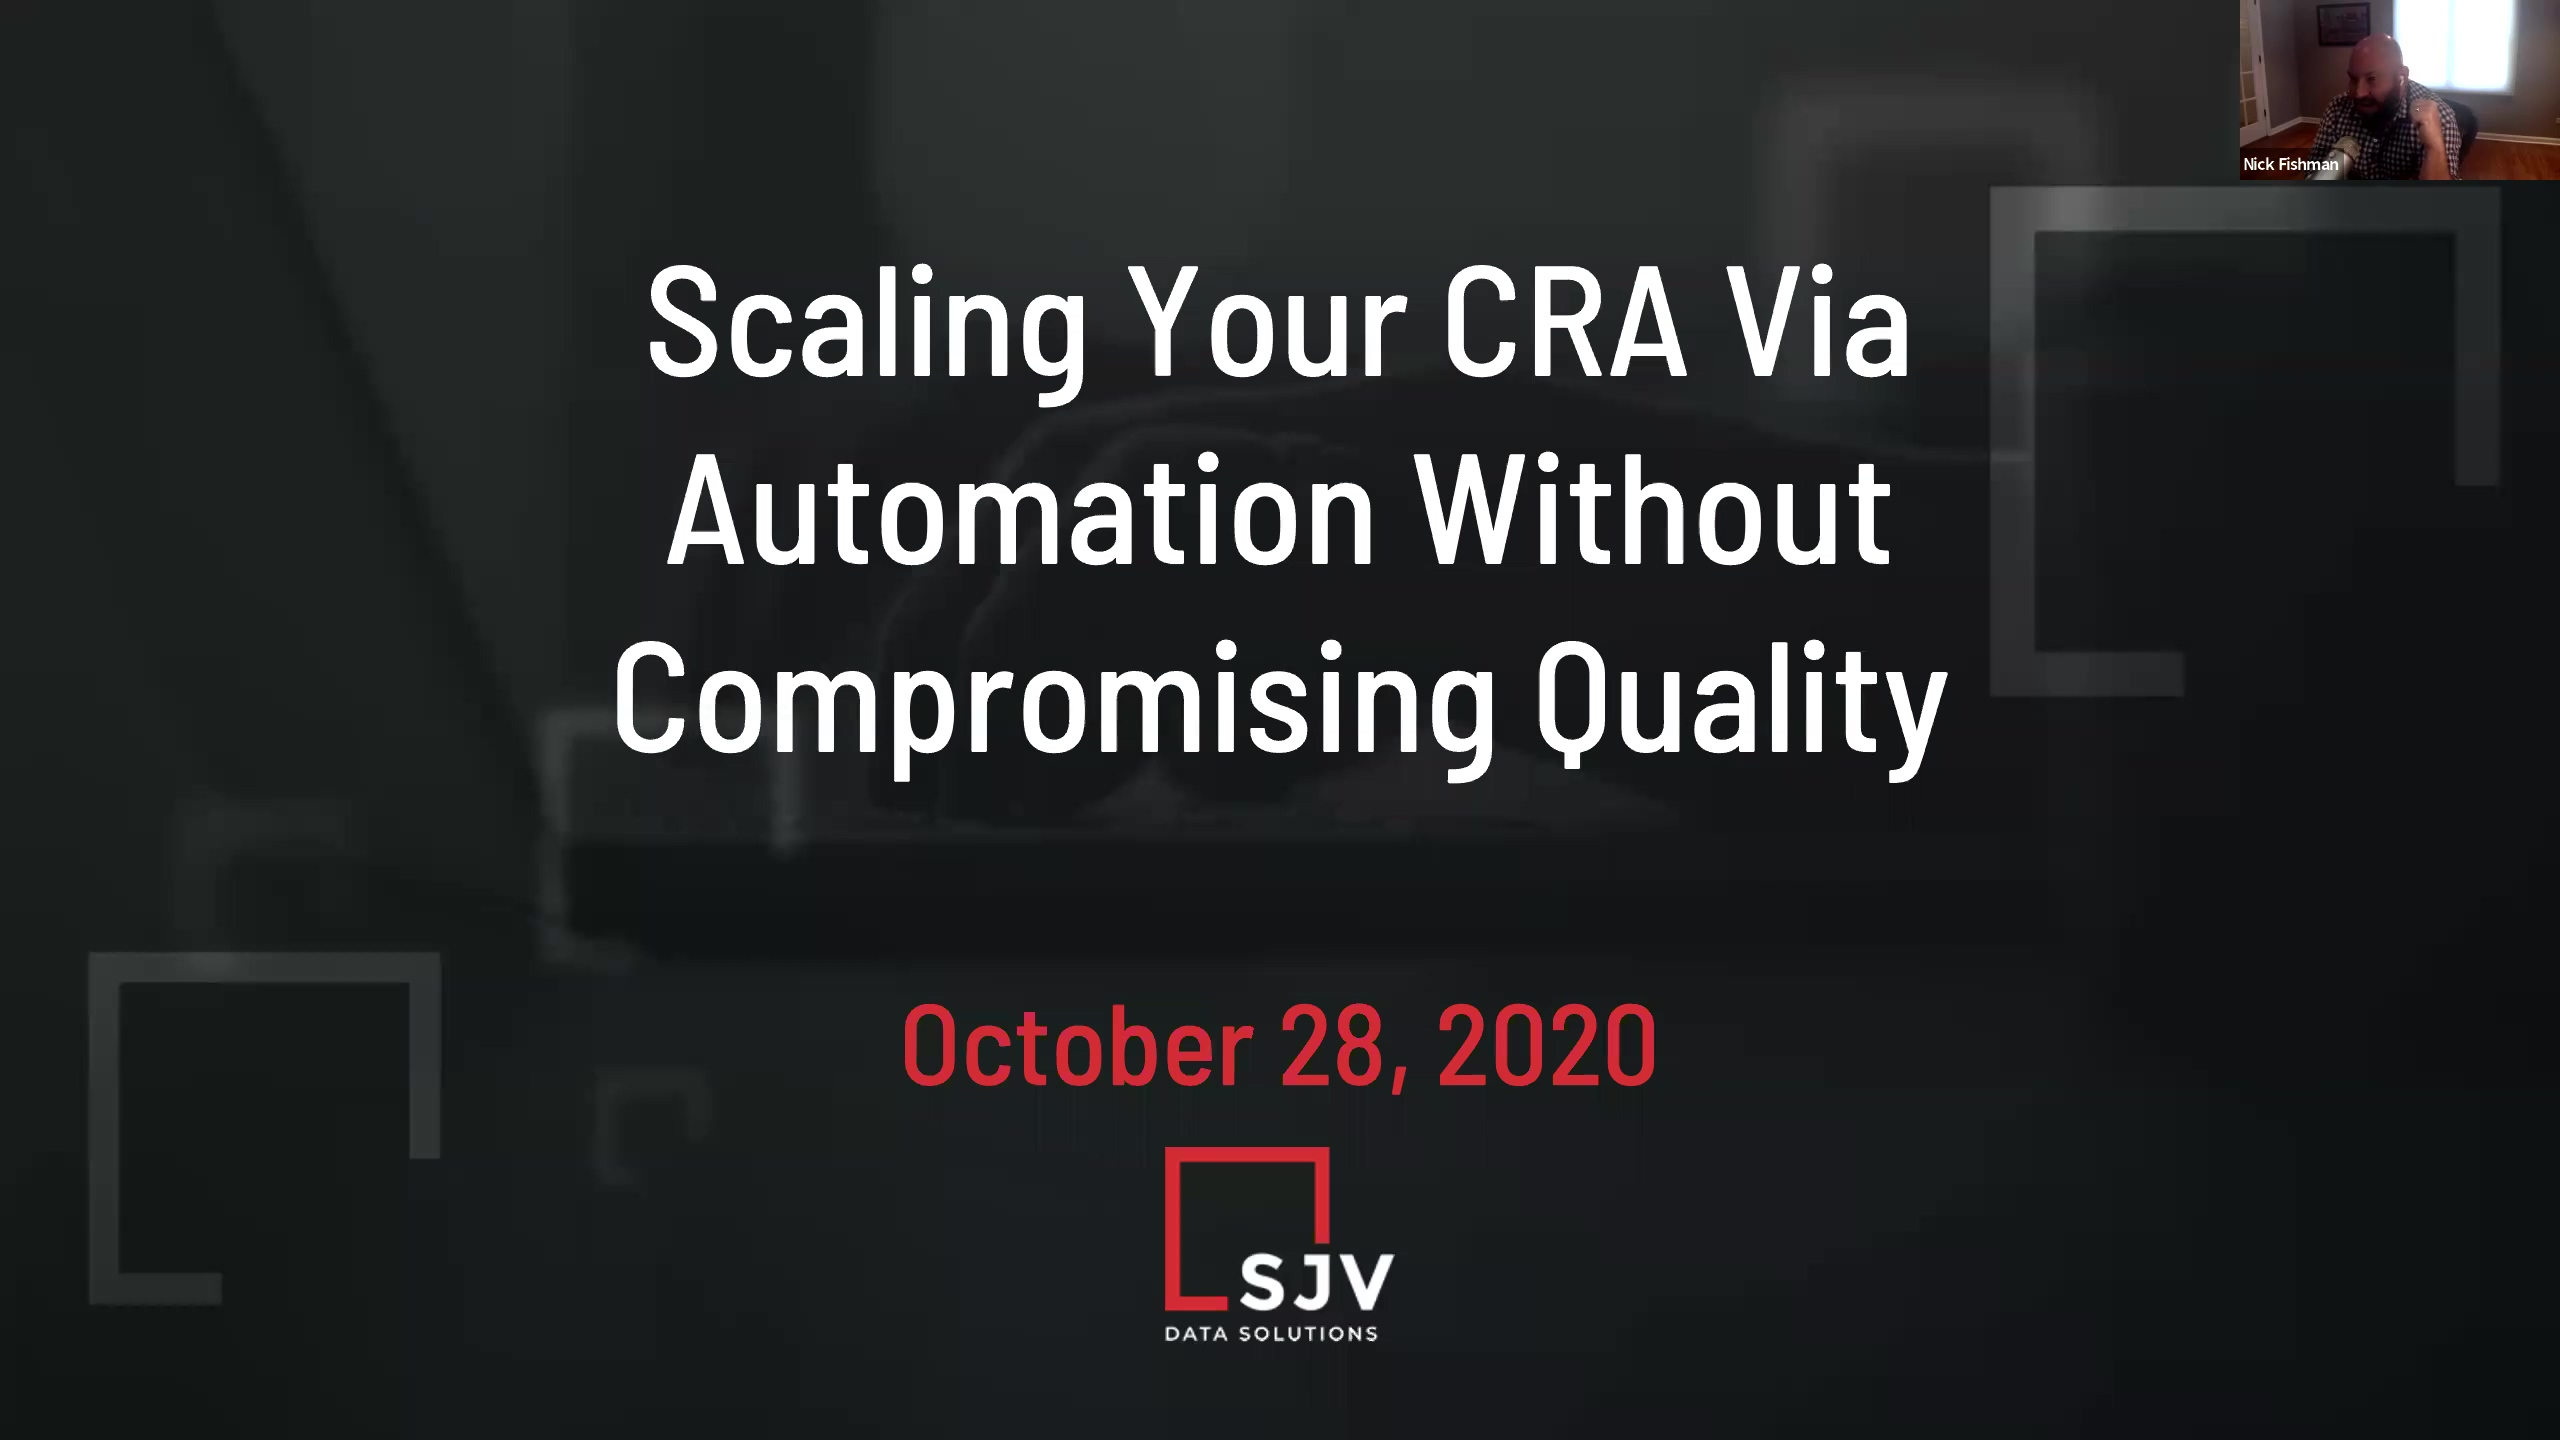 Scaling Your CRA via Automation Without Sacrificing Quality